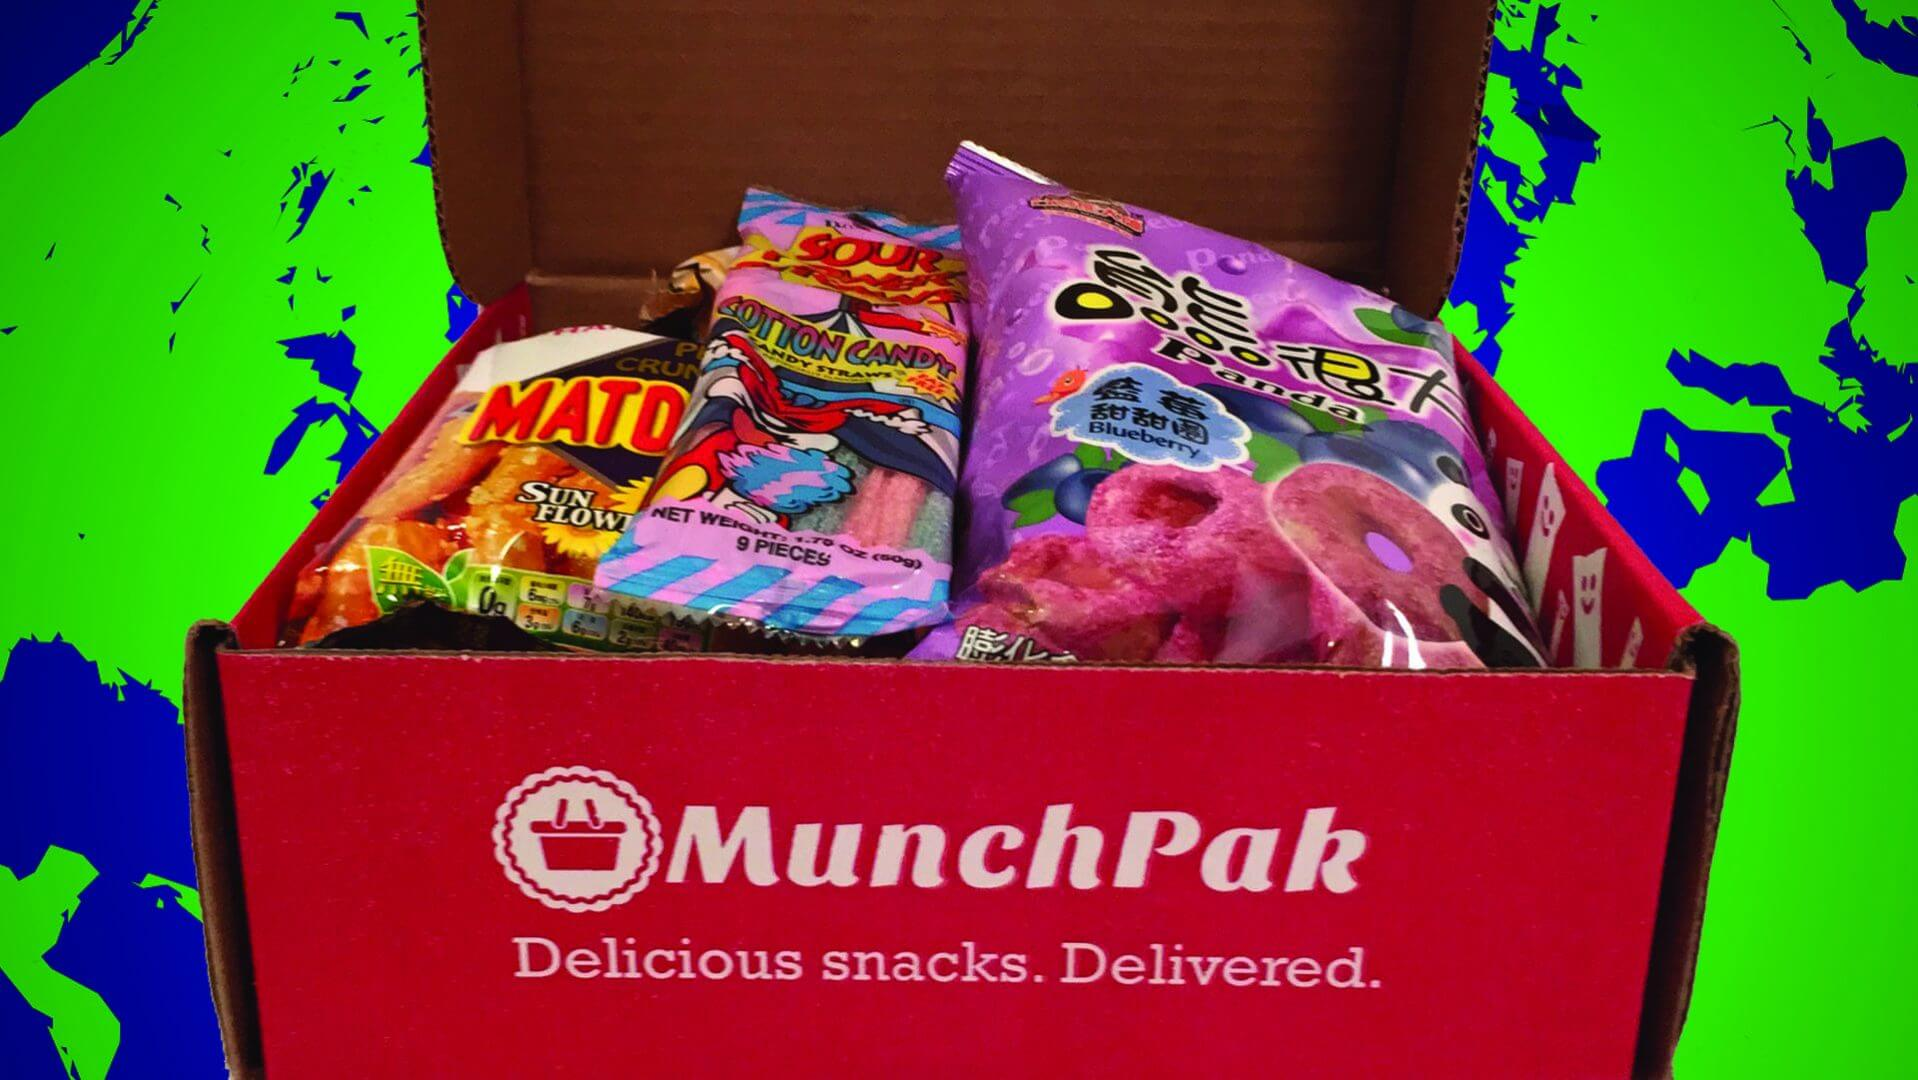 Munchpak: Yummy Global Snack Experience - Review